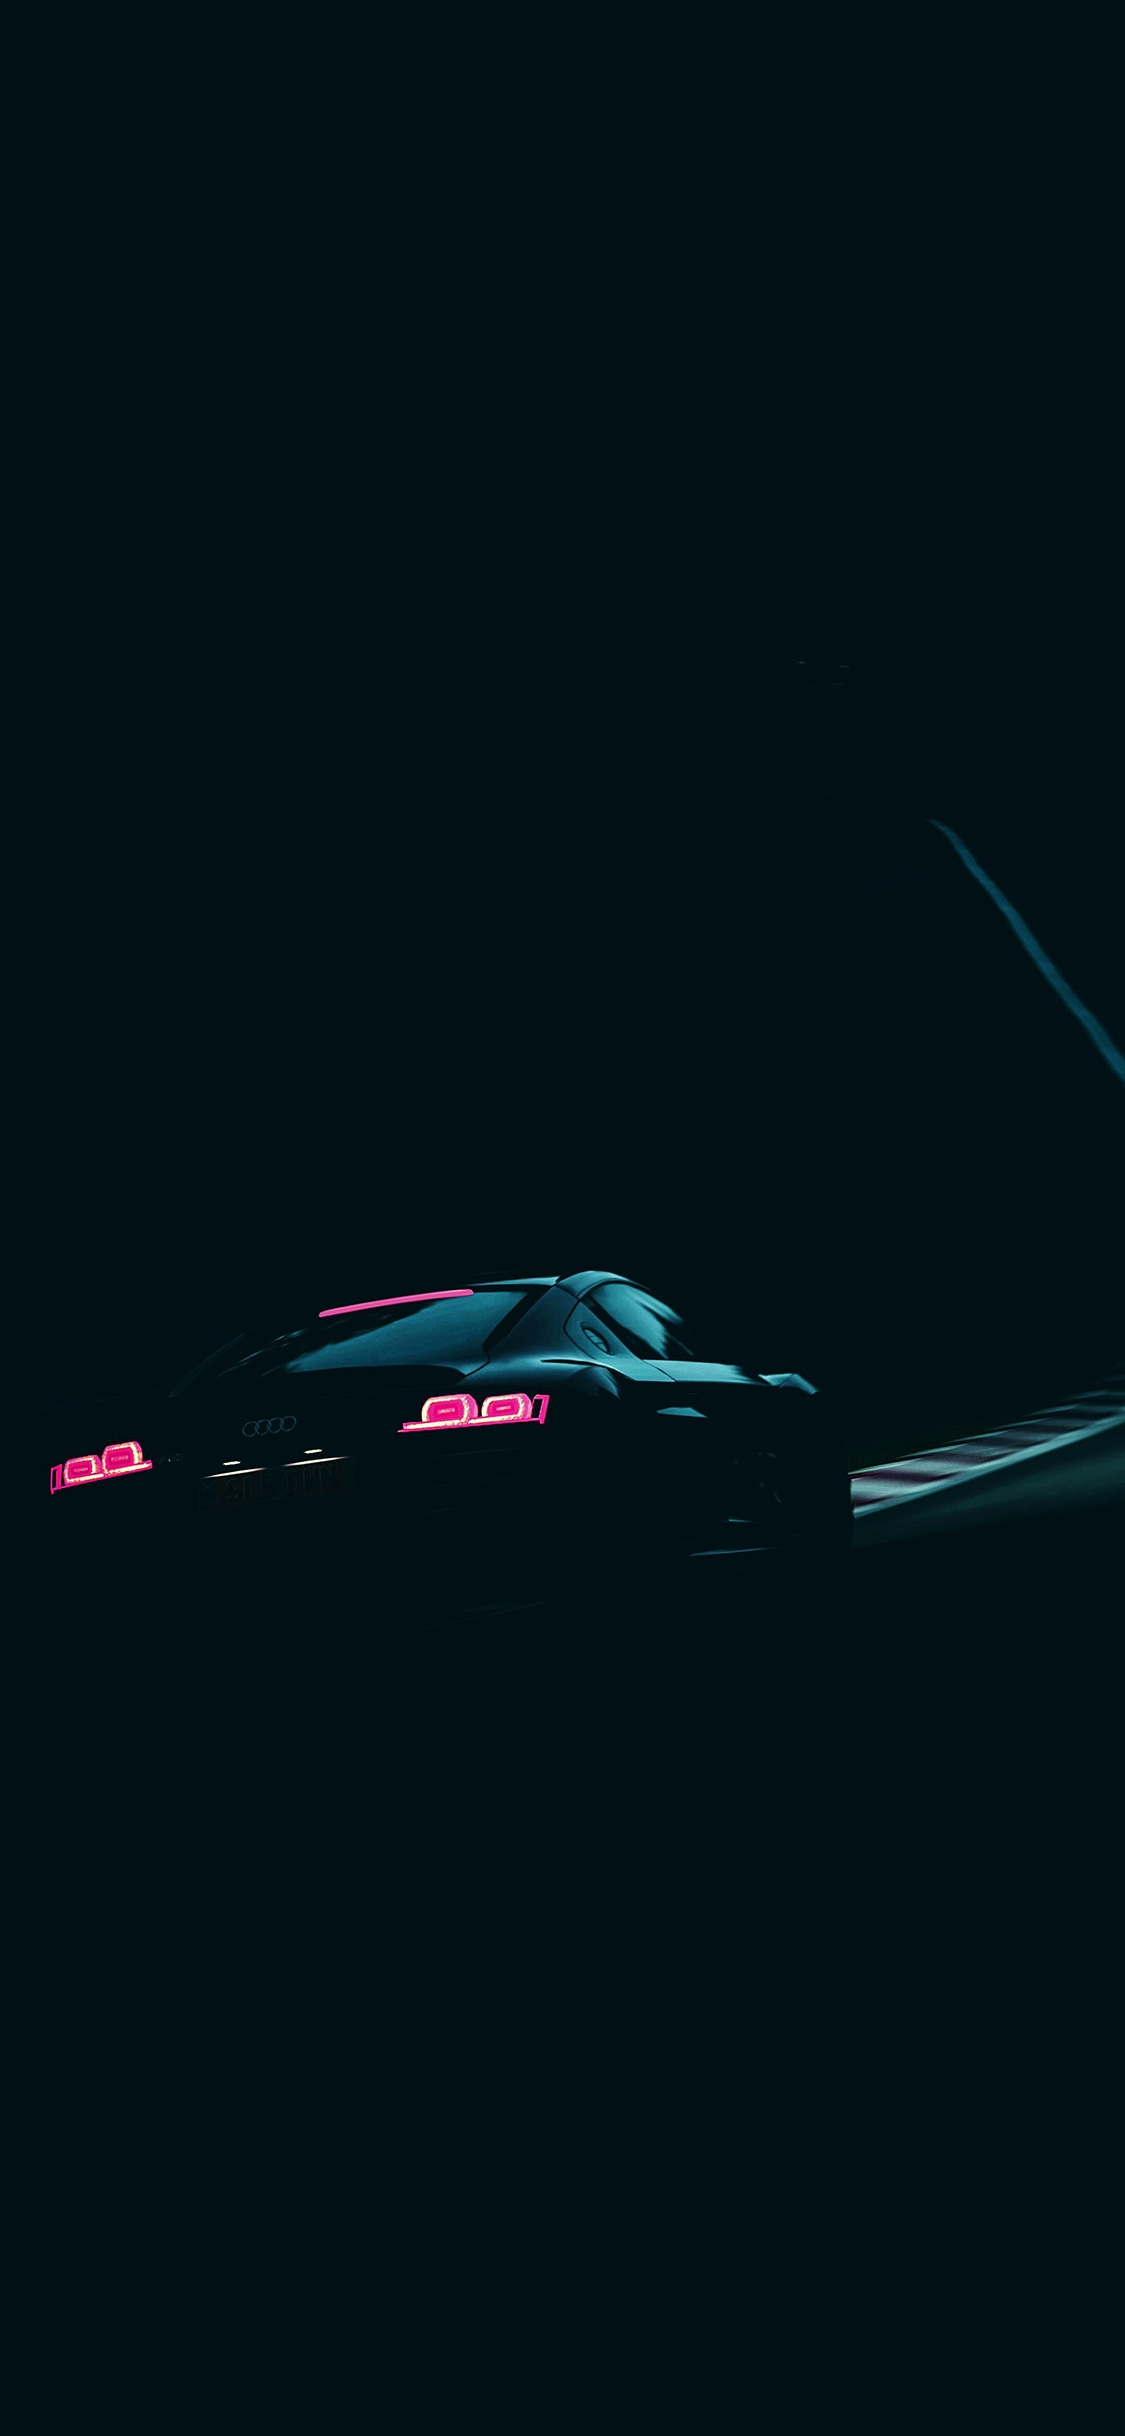 Choose from the iphone's default wallpaper selection or create your own vivid lock or home screen displays w. Cars Wallpapers For Iphone X Iphonexpapers 4k Wallpaper For Iphone Xs Max 1125x2436 Wallpaper Teahub Io